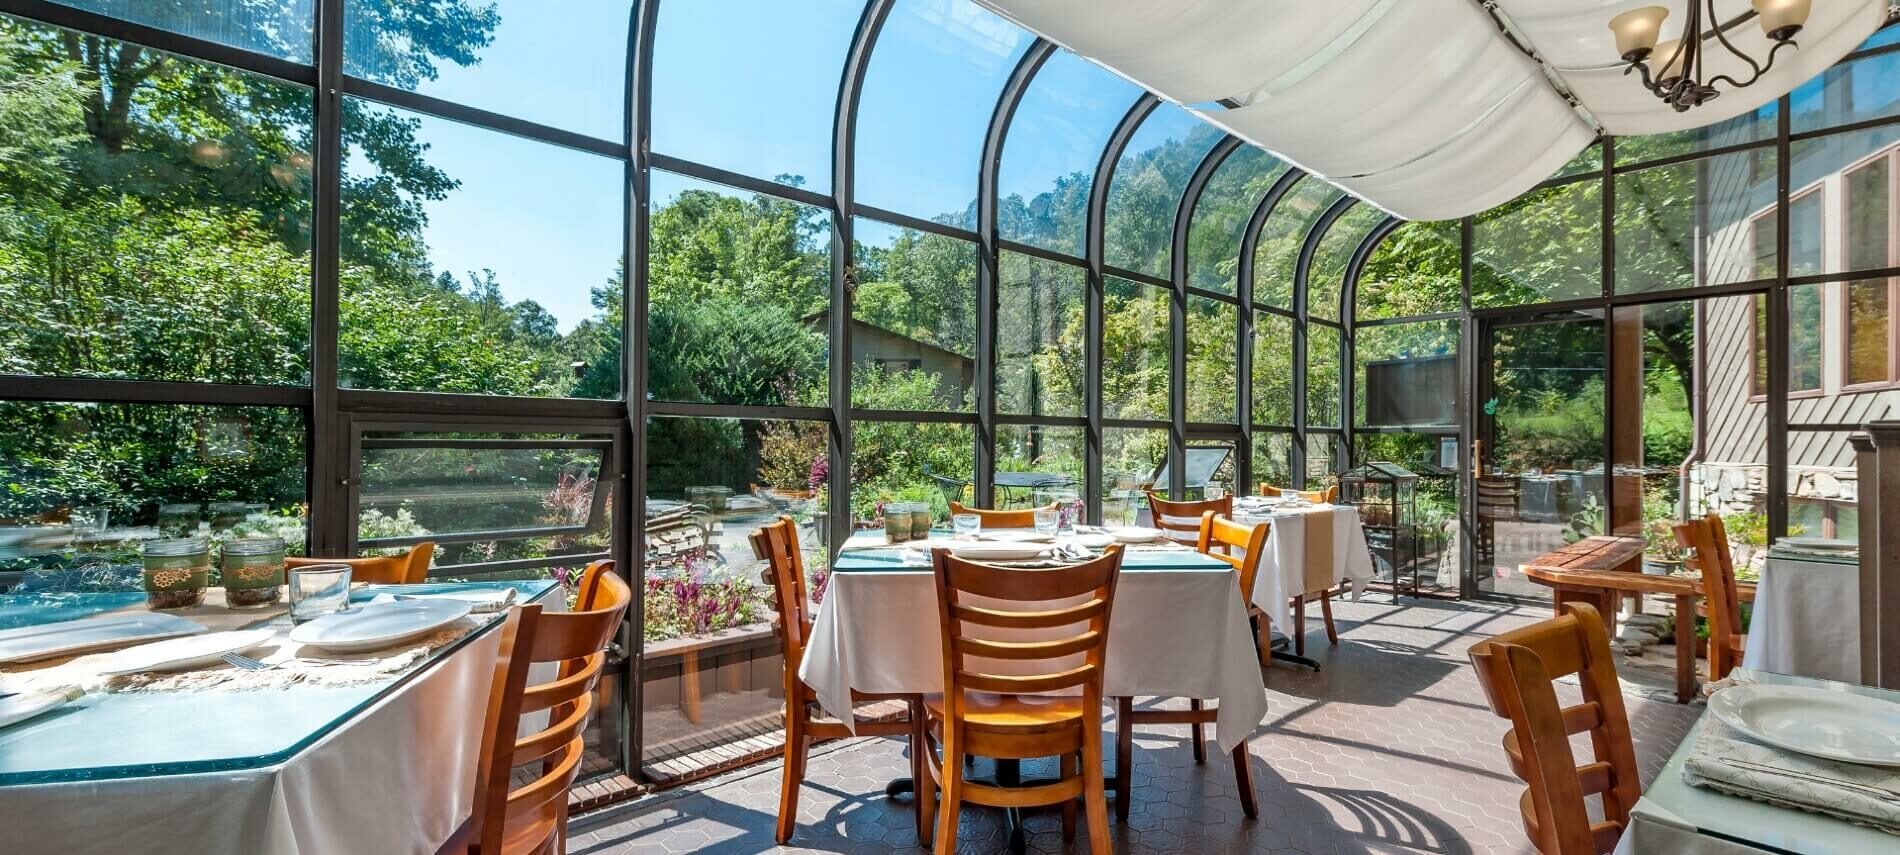 Tables and chairs set for dining in a glassed-in solarium looking out on trees, garden and blue sky